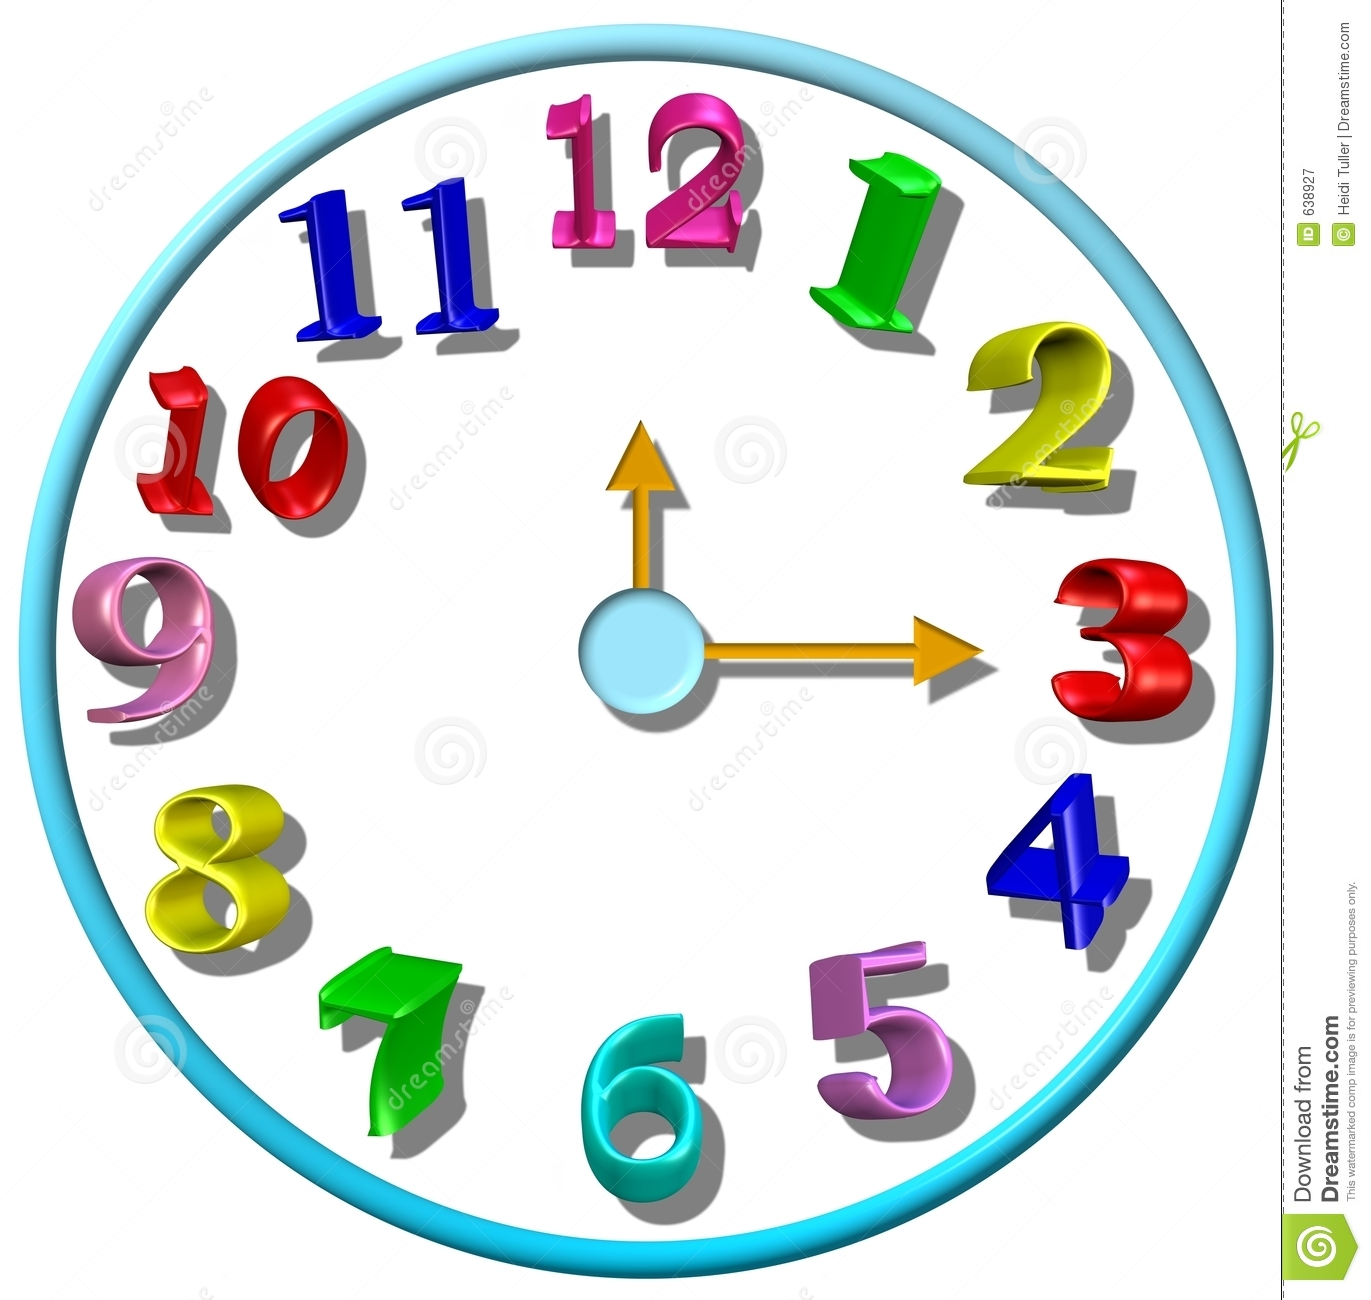 Images of a free. Clock clipart kindergarten